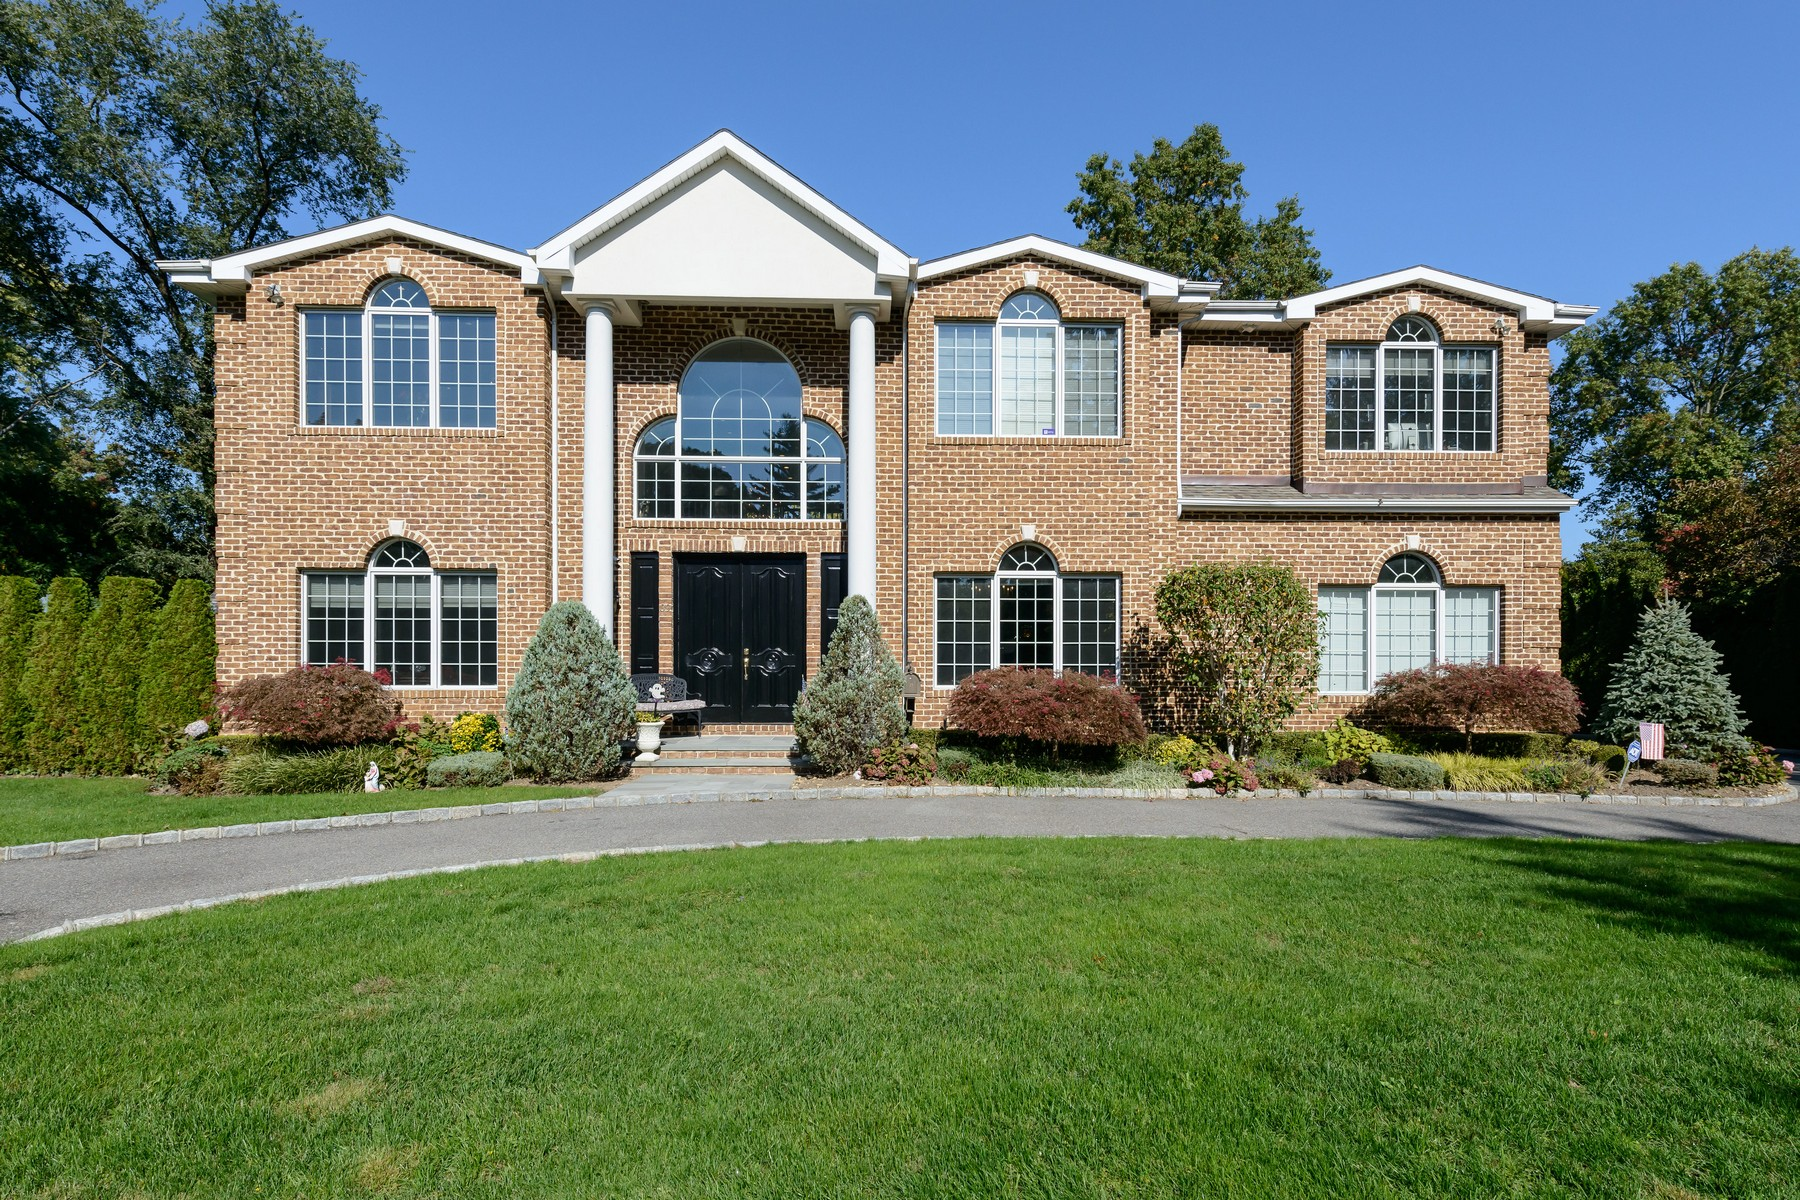 Single Family Home for Sale at Colonial 39 Pebble Ln Roslyn Heights, New York, 11577 United States